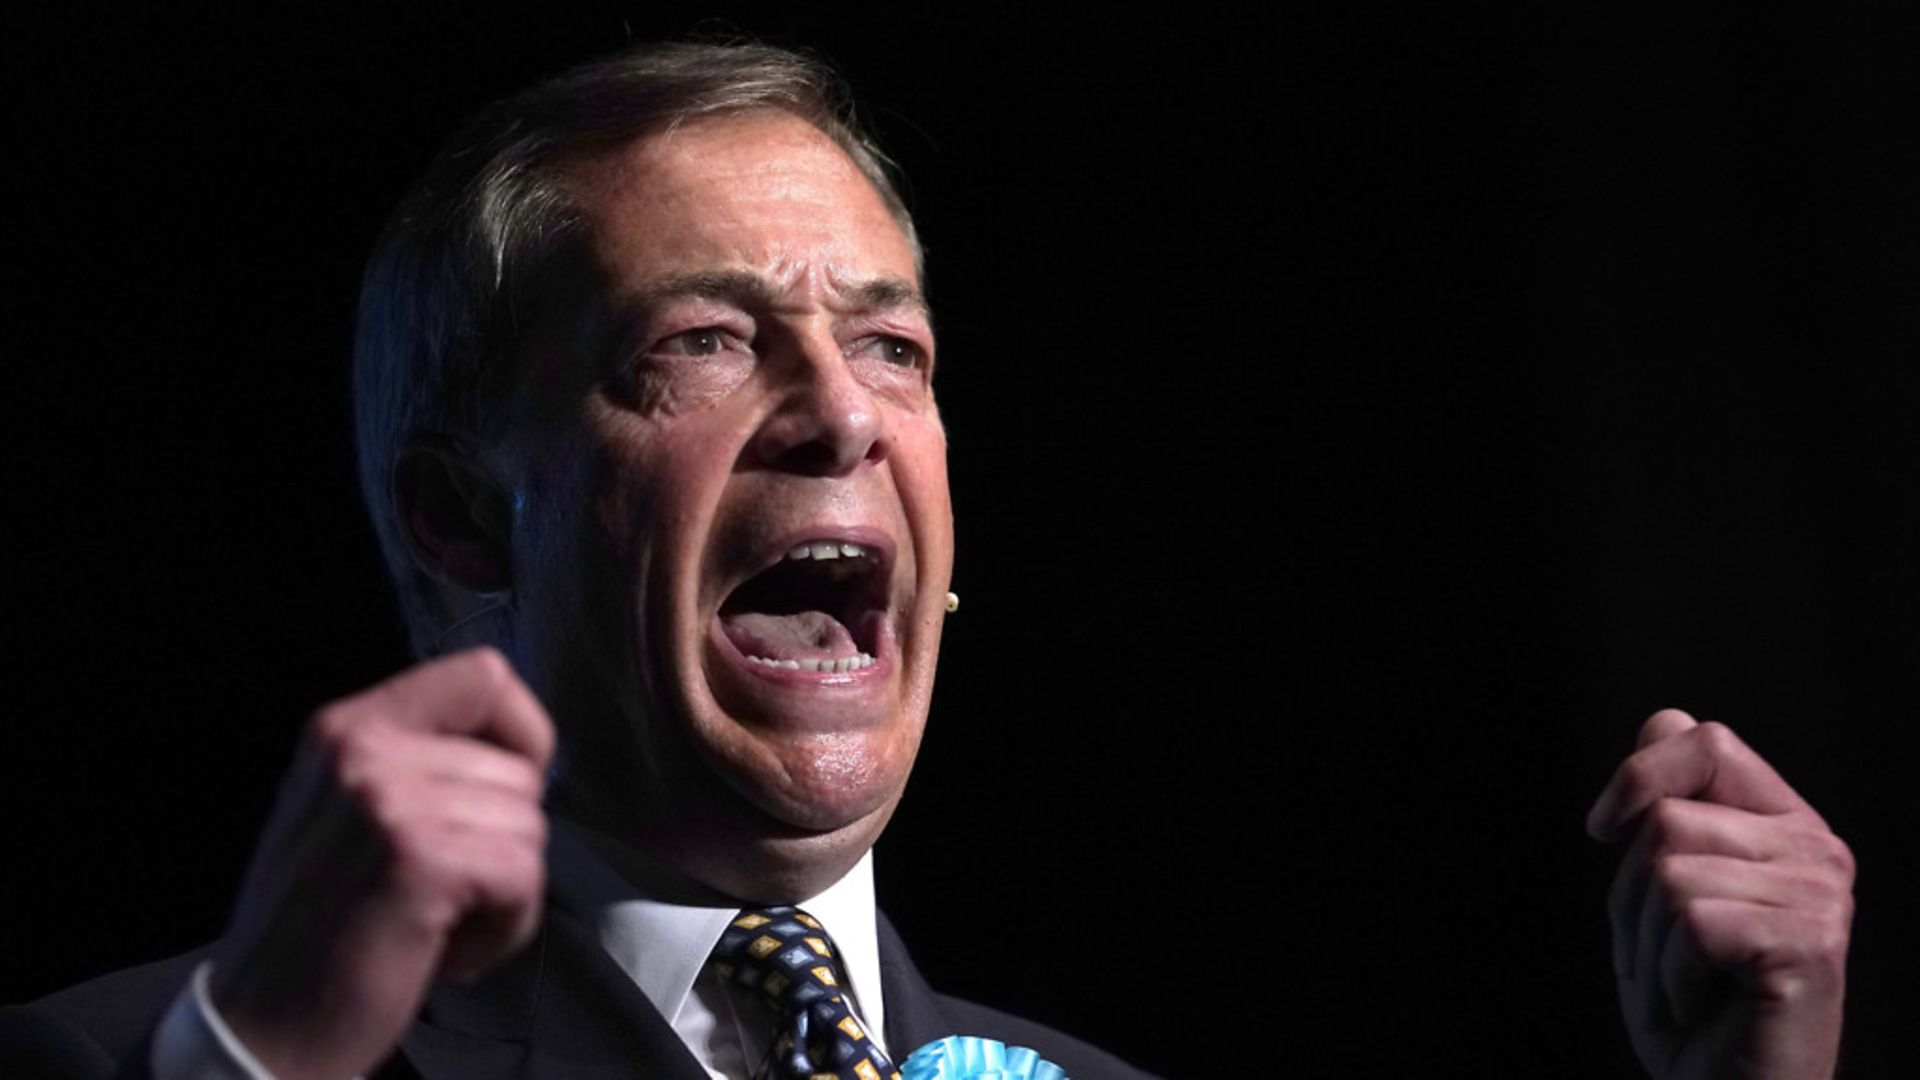 Brexit Party's Nigel Farage addresses supporters during a rally. - Credit: Getty Images